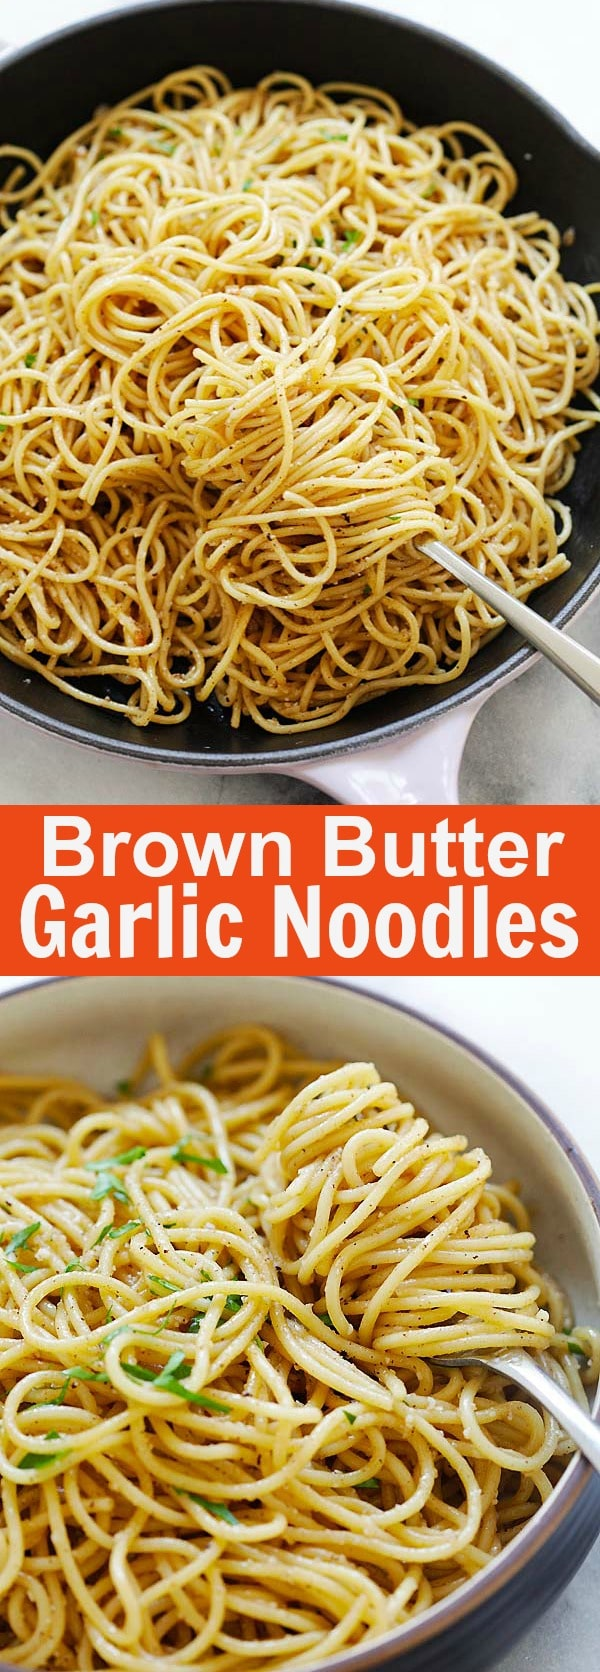 Brown Butter Garlic Noodles - the best noodles ever with garlic, brown butter, Parmesan cheese and oyster sauce. This recipe is delicious and takes 20 mins to make | rasamalaysia.com